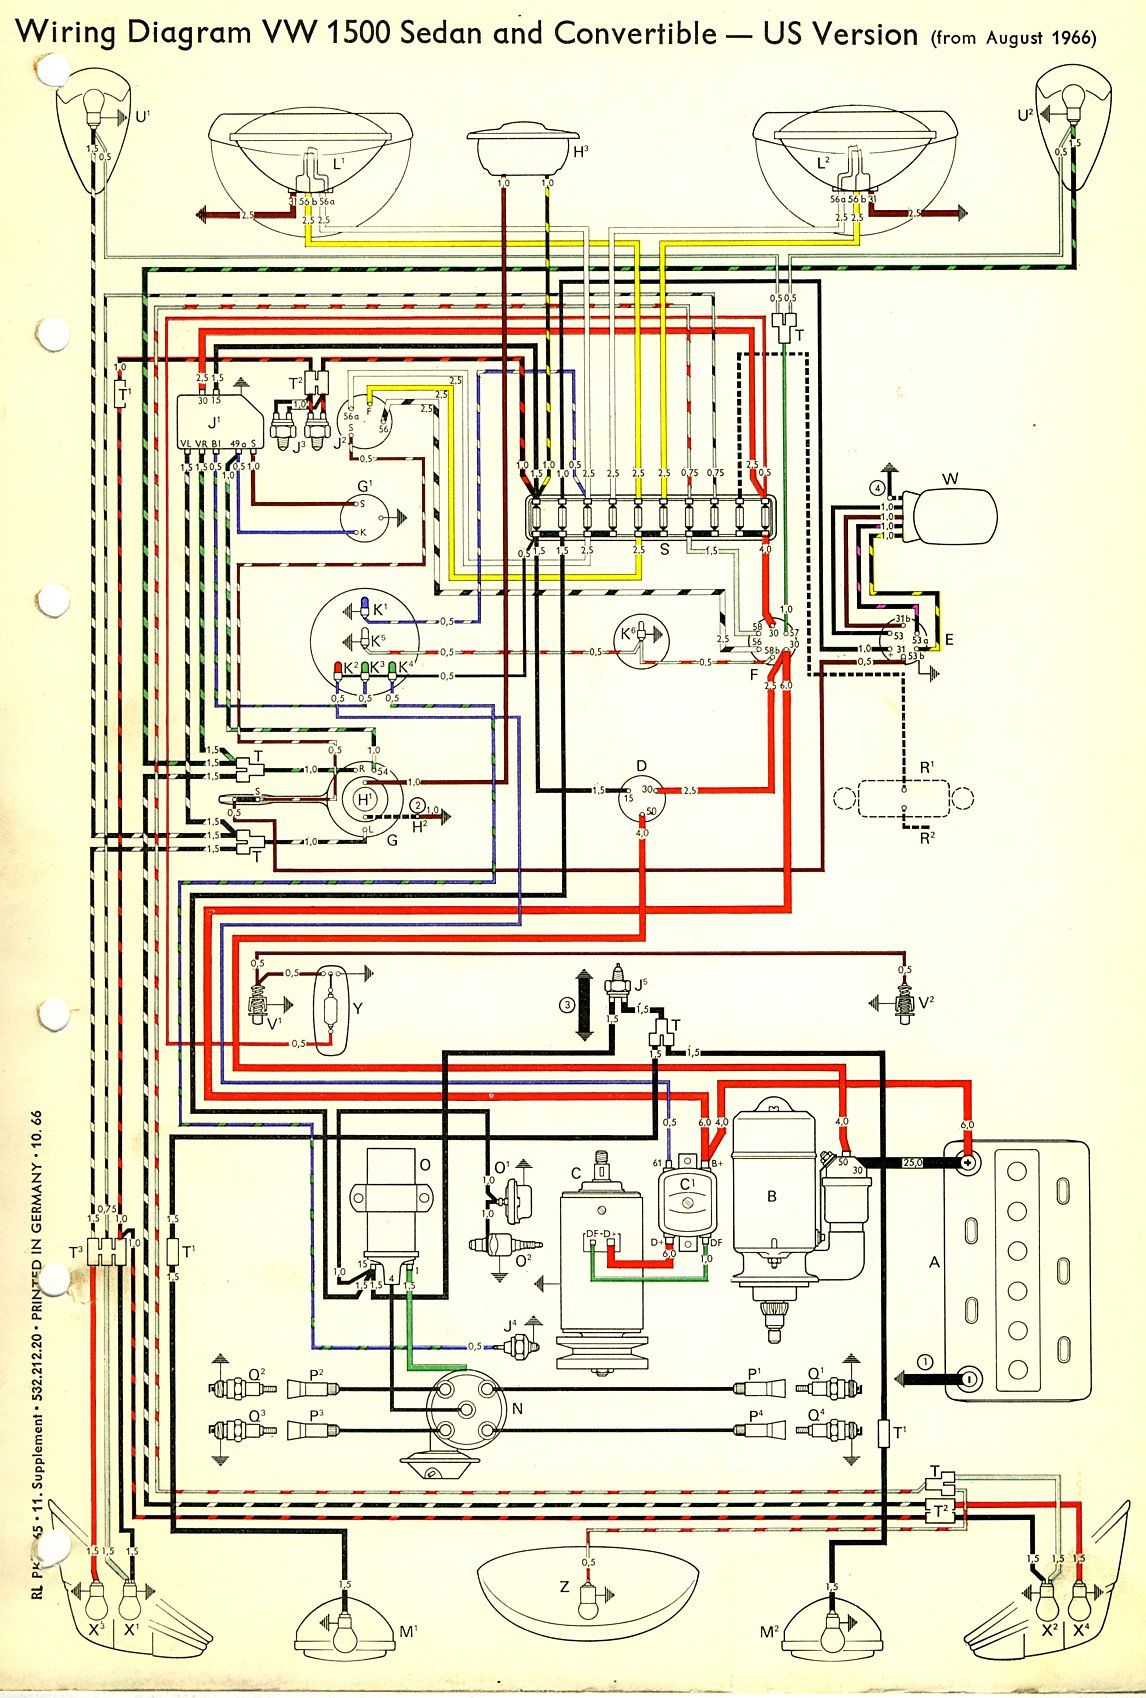 1adf990c0efb617c789fdd21338448b0 1967 beetle wiring diagram (usa) thegoldenbug com best 1967 vw vw beetle 2002 radio wiring diagram at panicattacktreatment.co